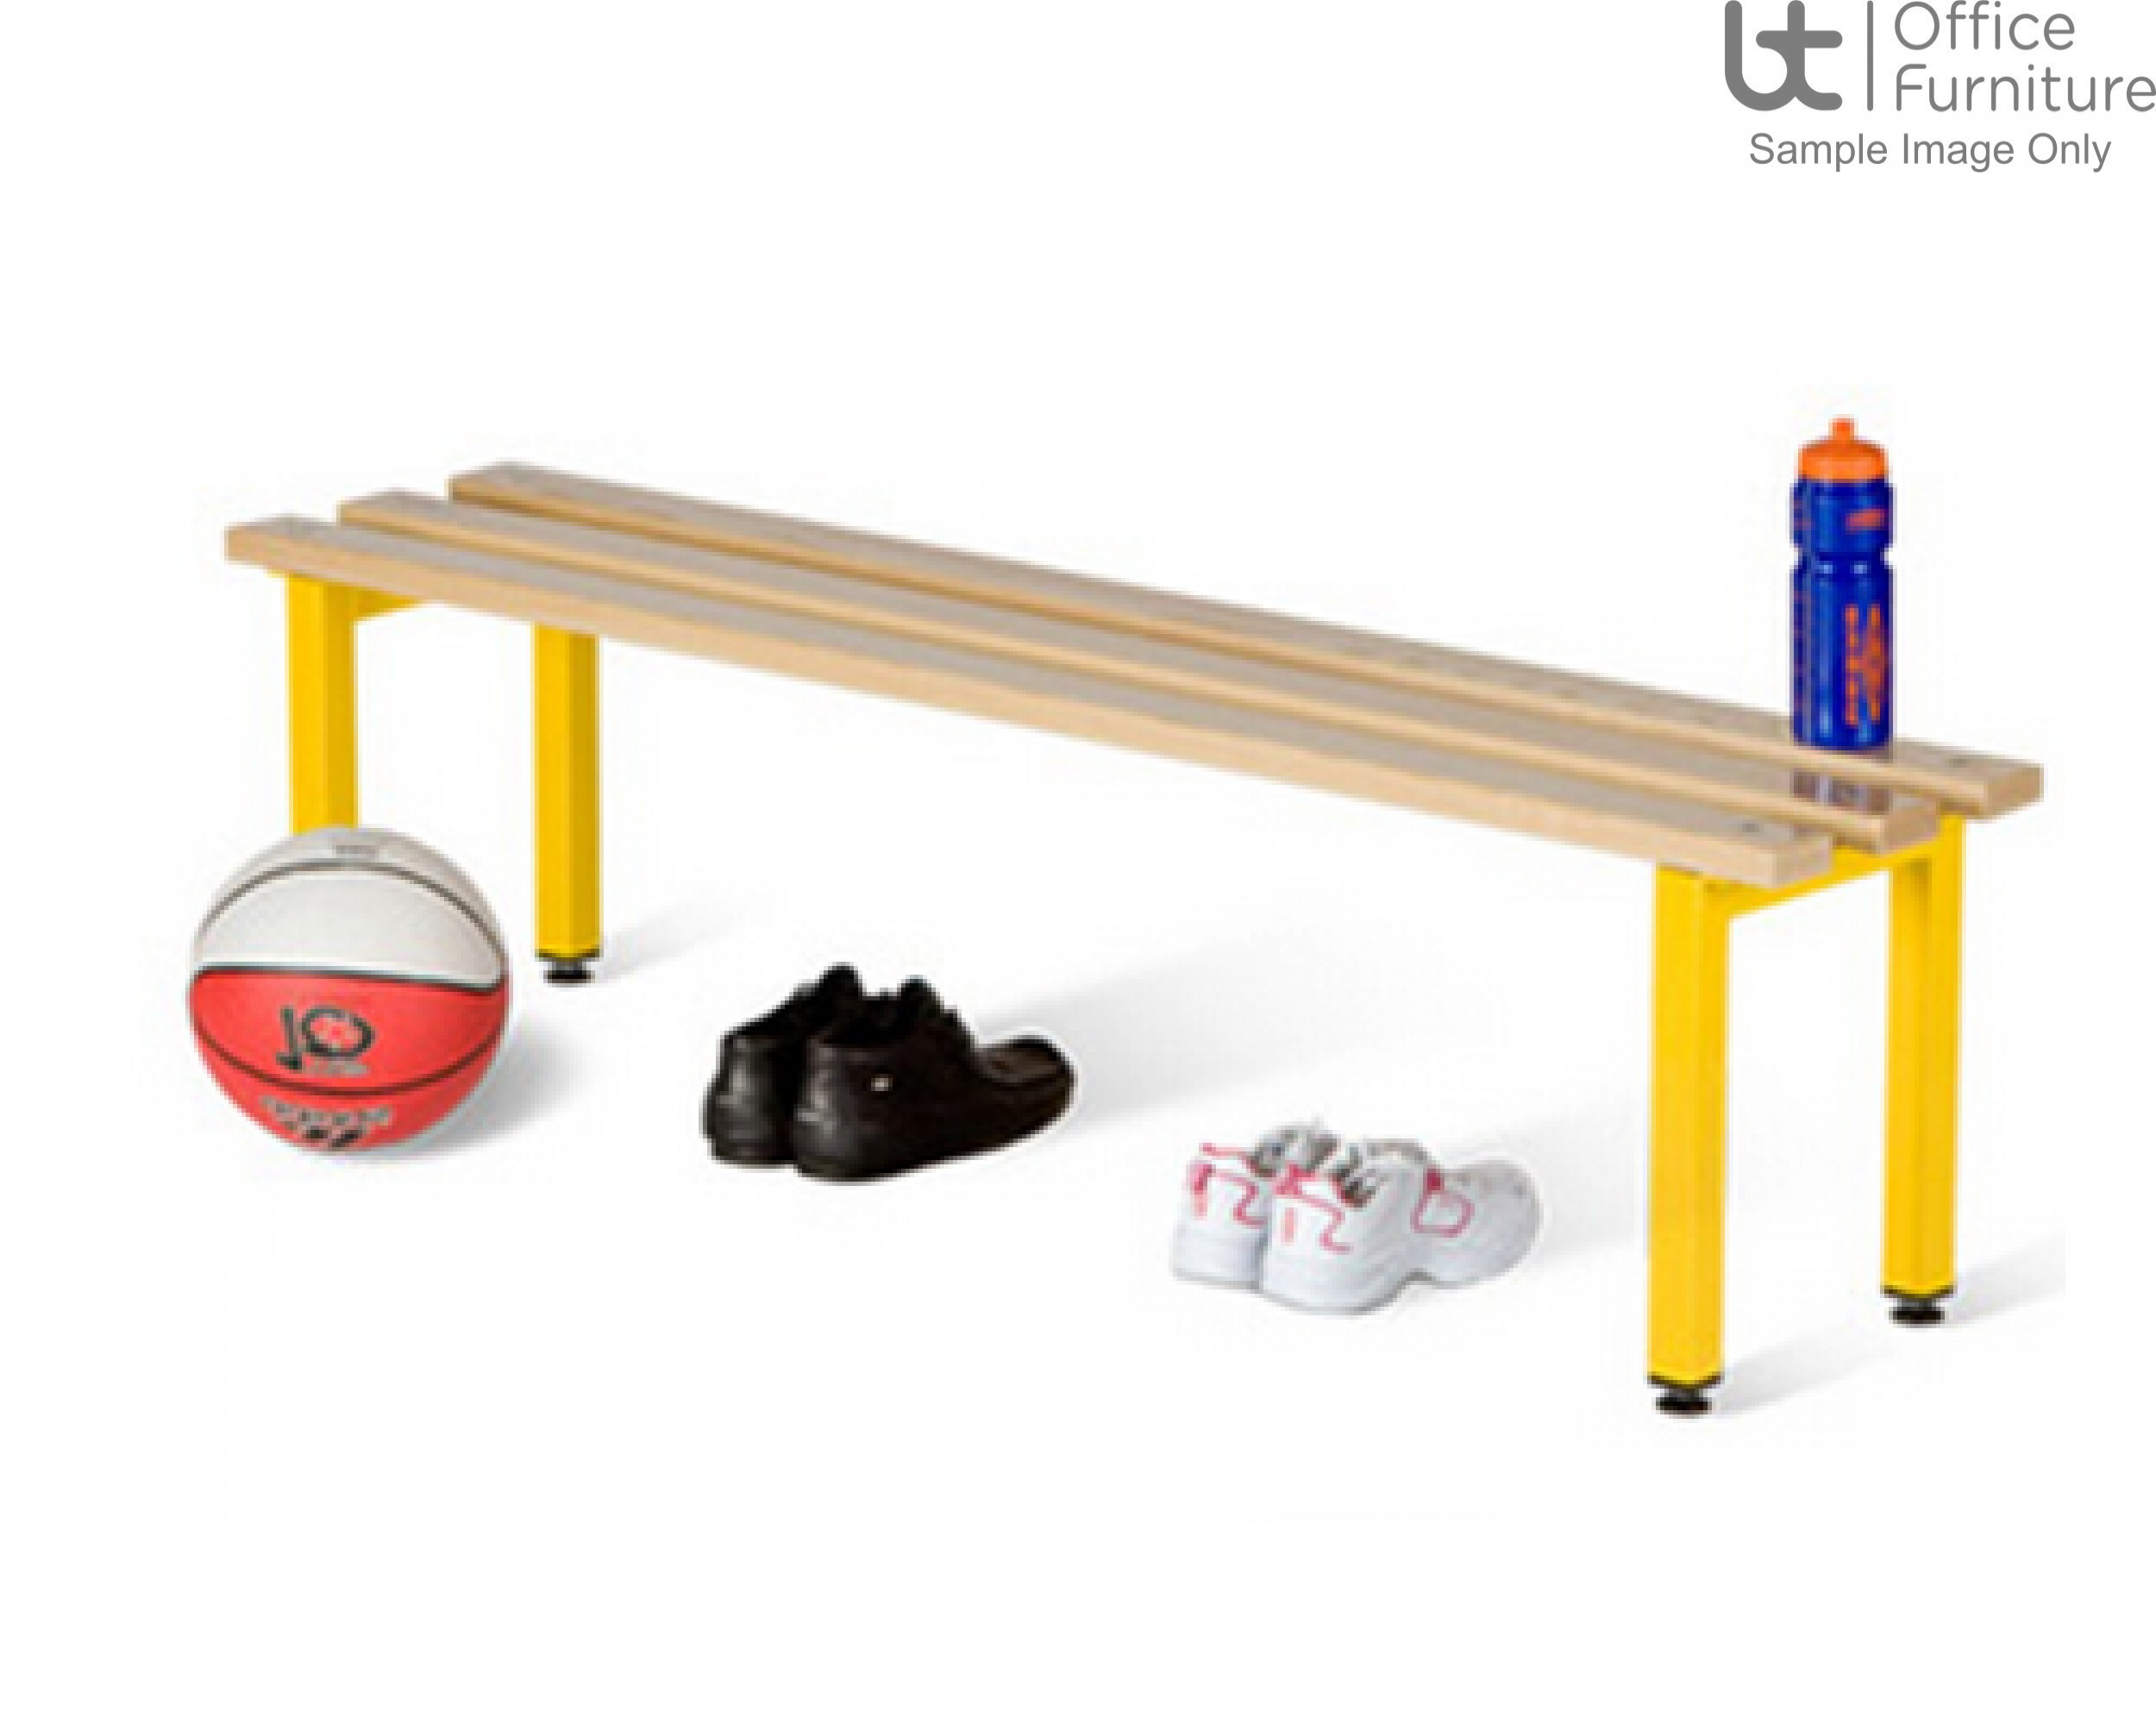 HOF Cloakroom Equipment - Single Sided Bench Seating